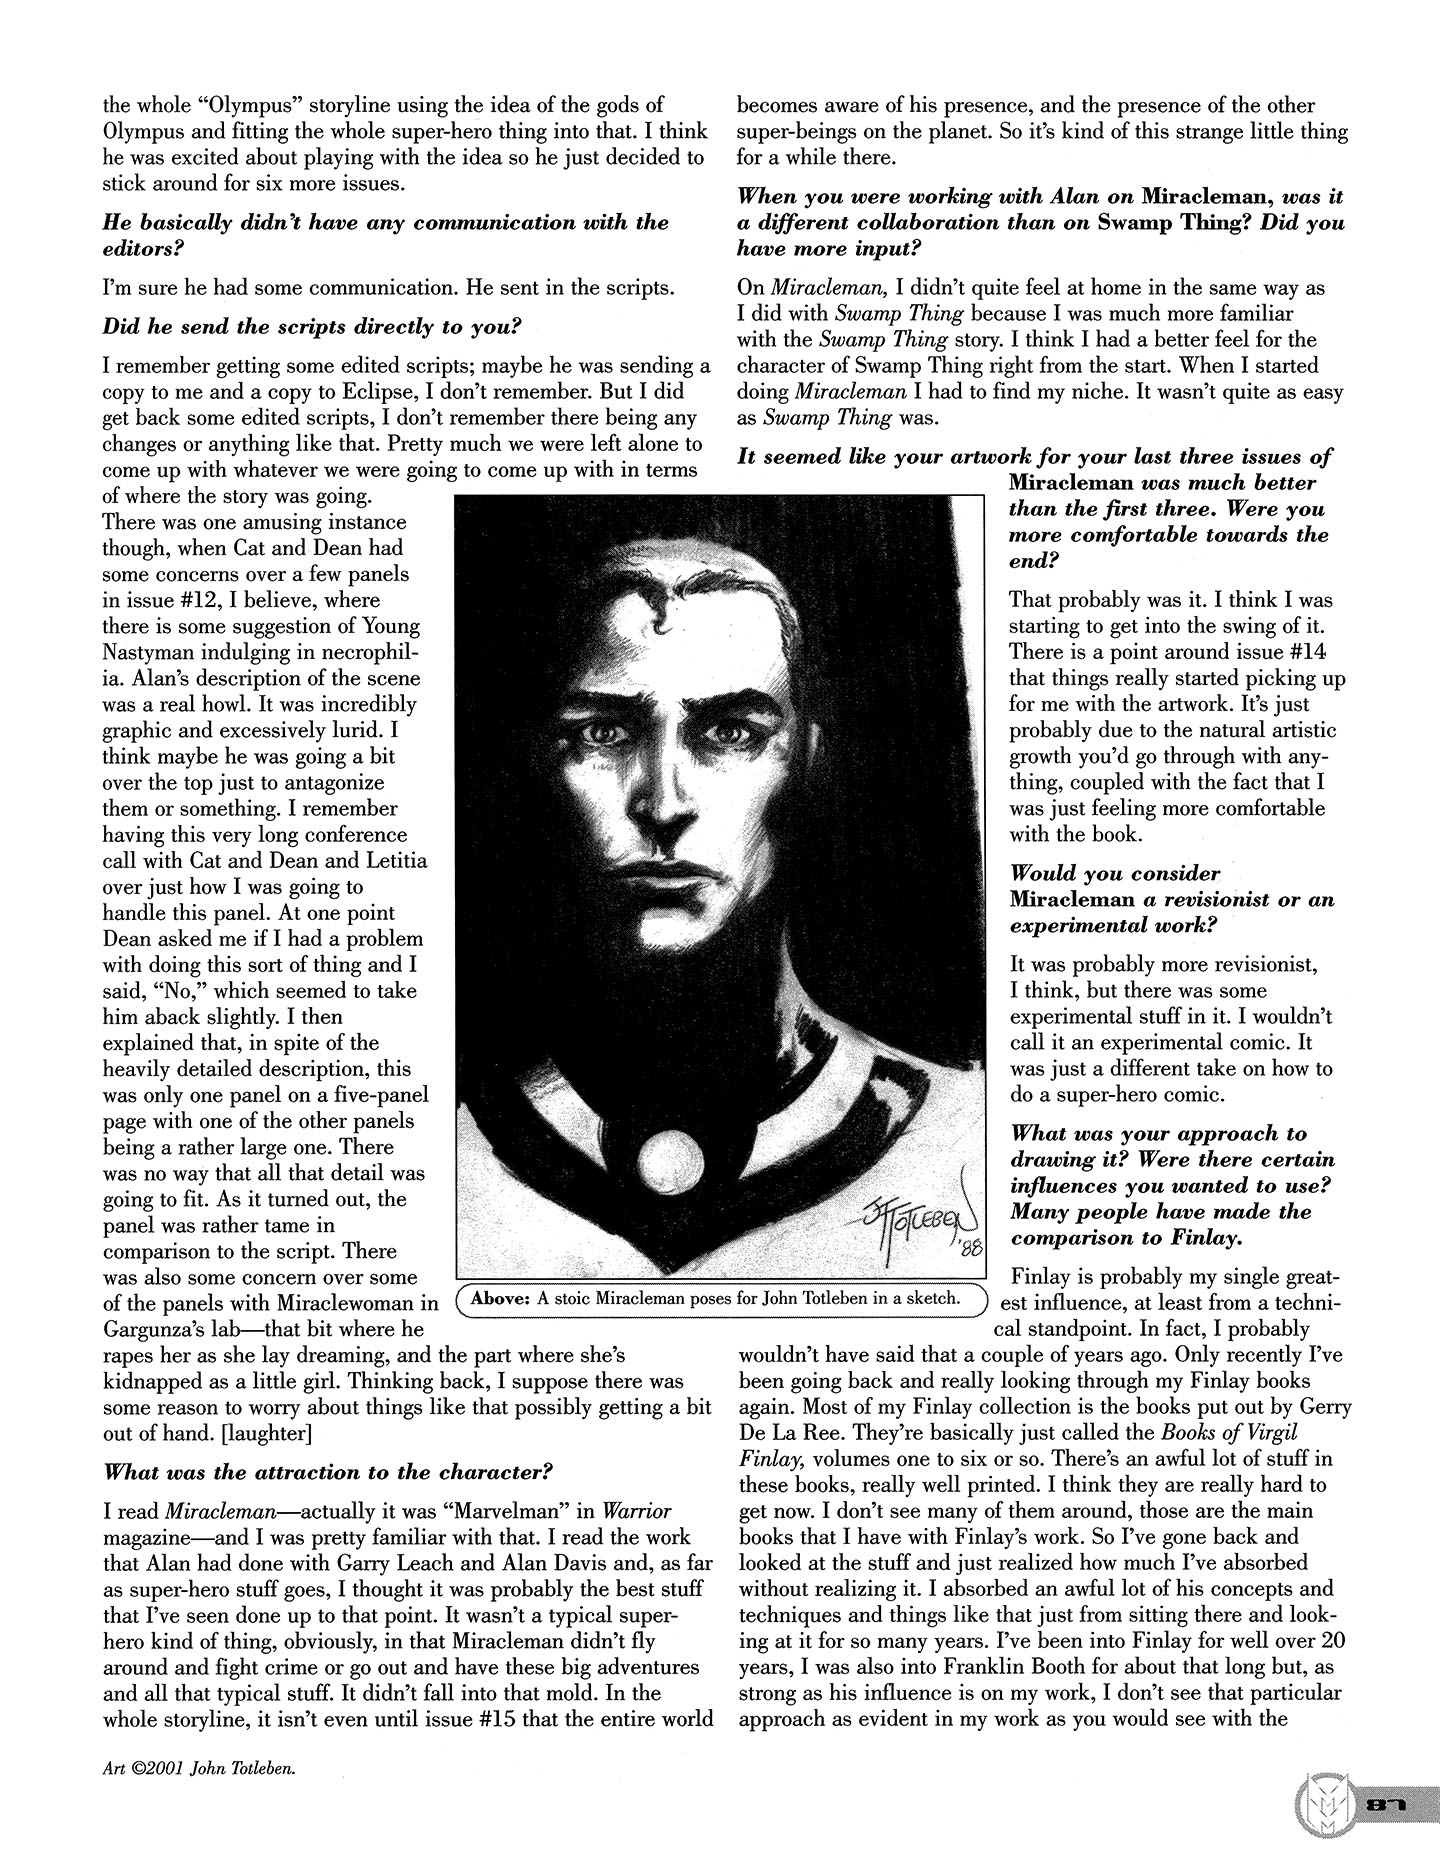 Read online Kimota!: The Miracleman Companion comic -  Issue # Full - 88